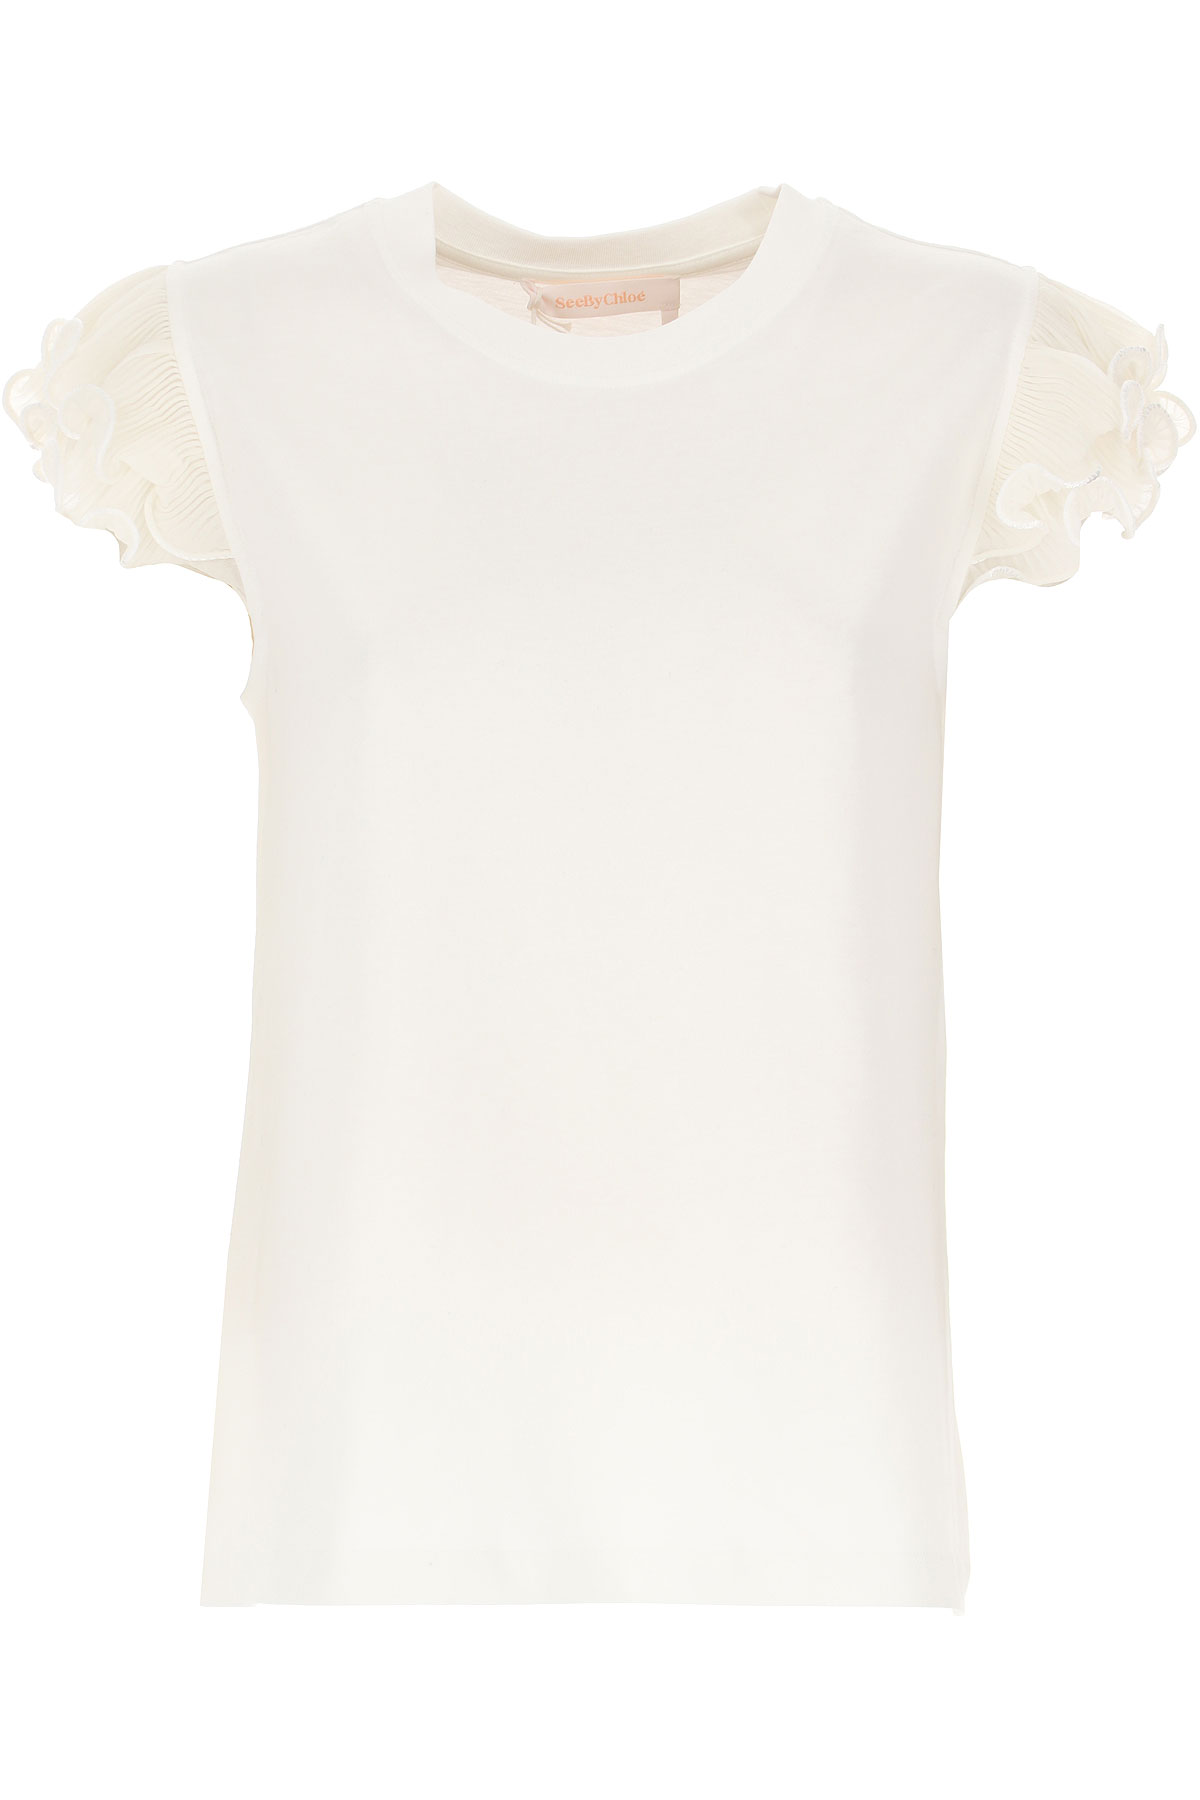 See By Chloe T-Shirt for Women, White, Cotton, 2019, 2 4 6 8